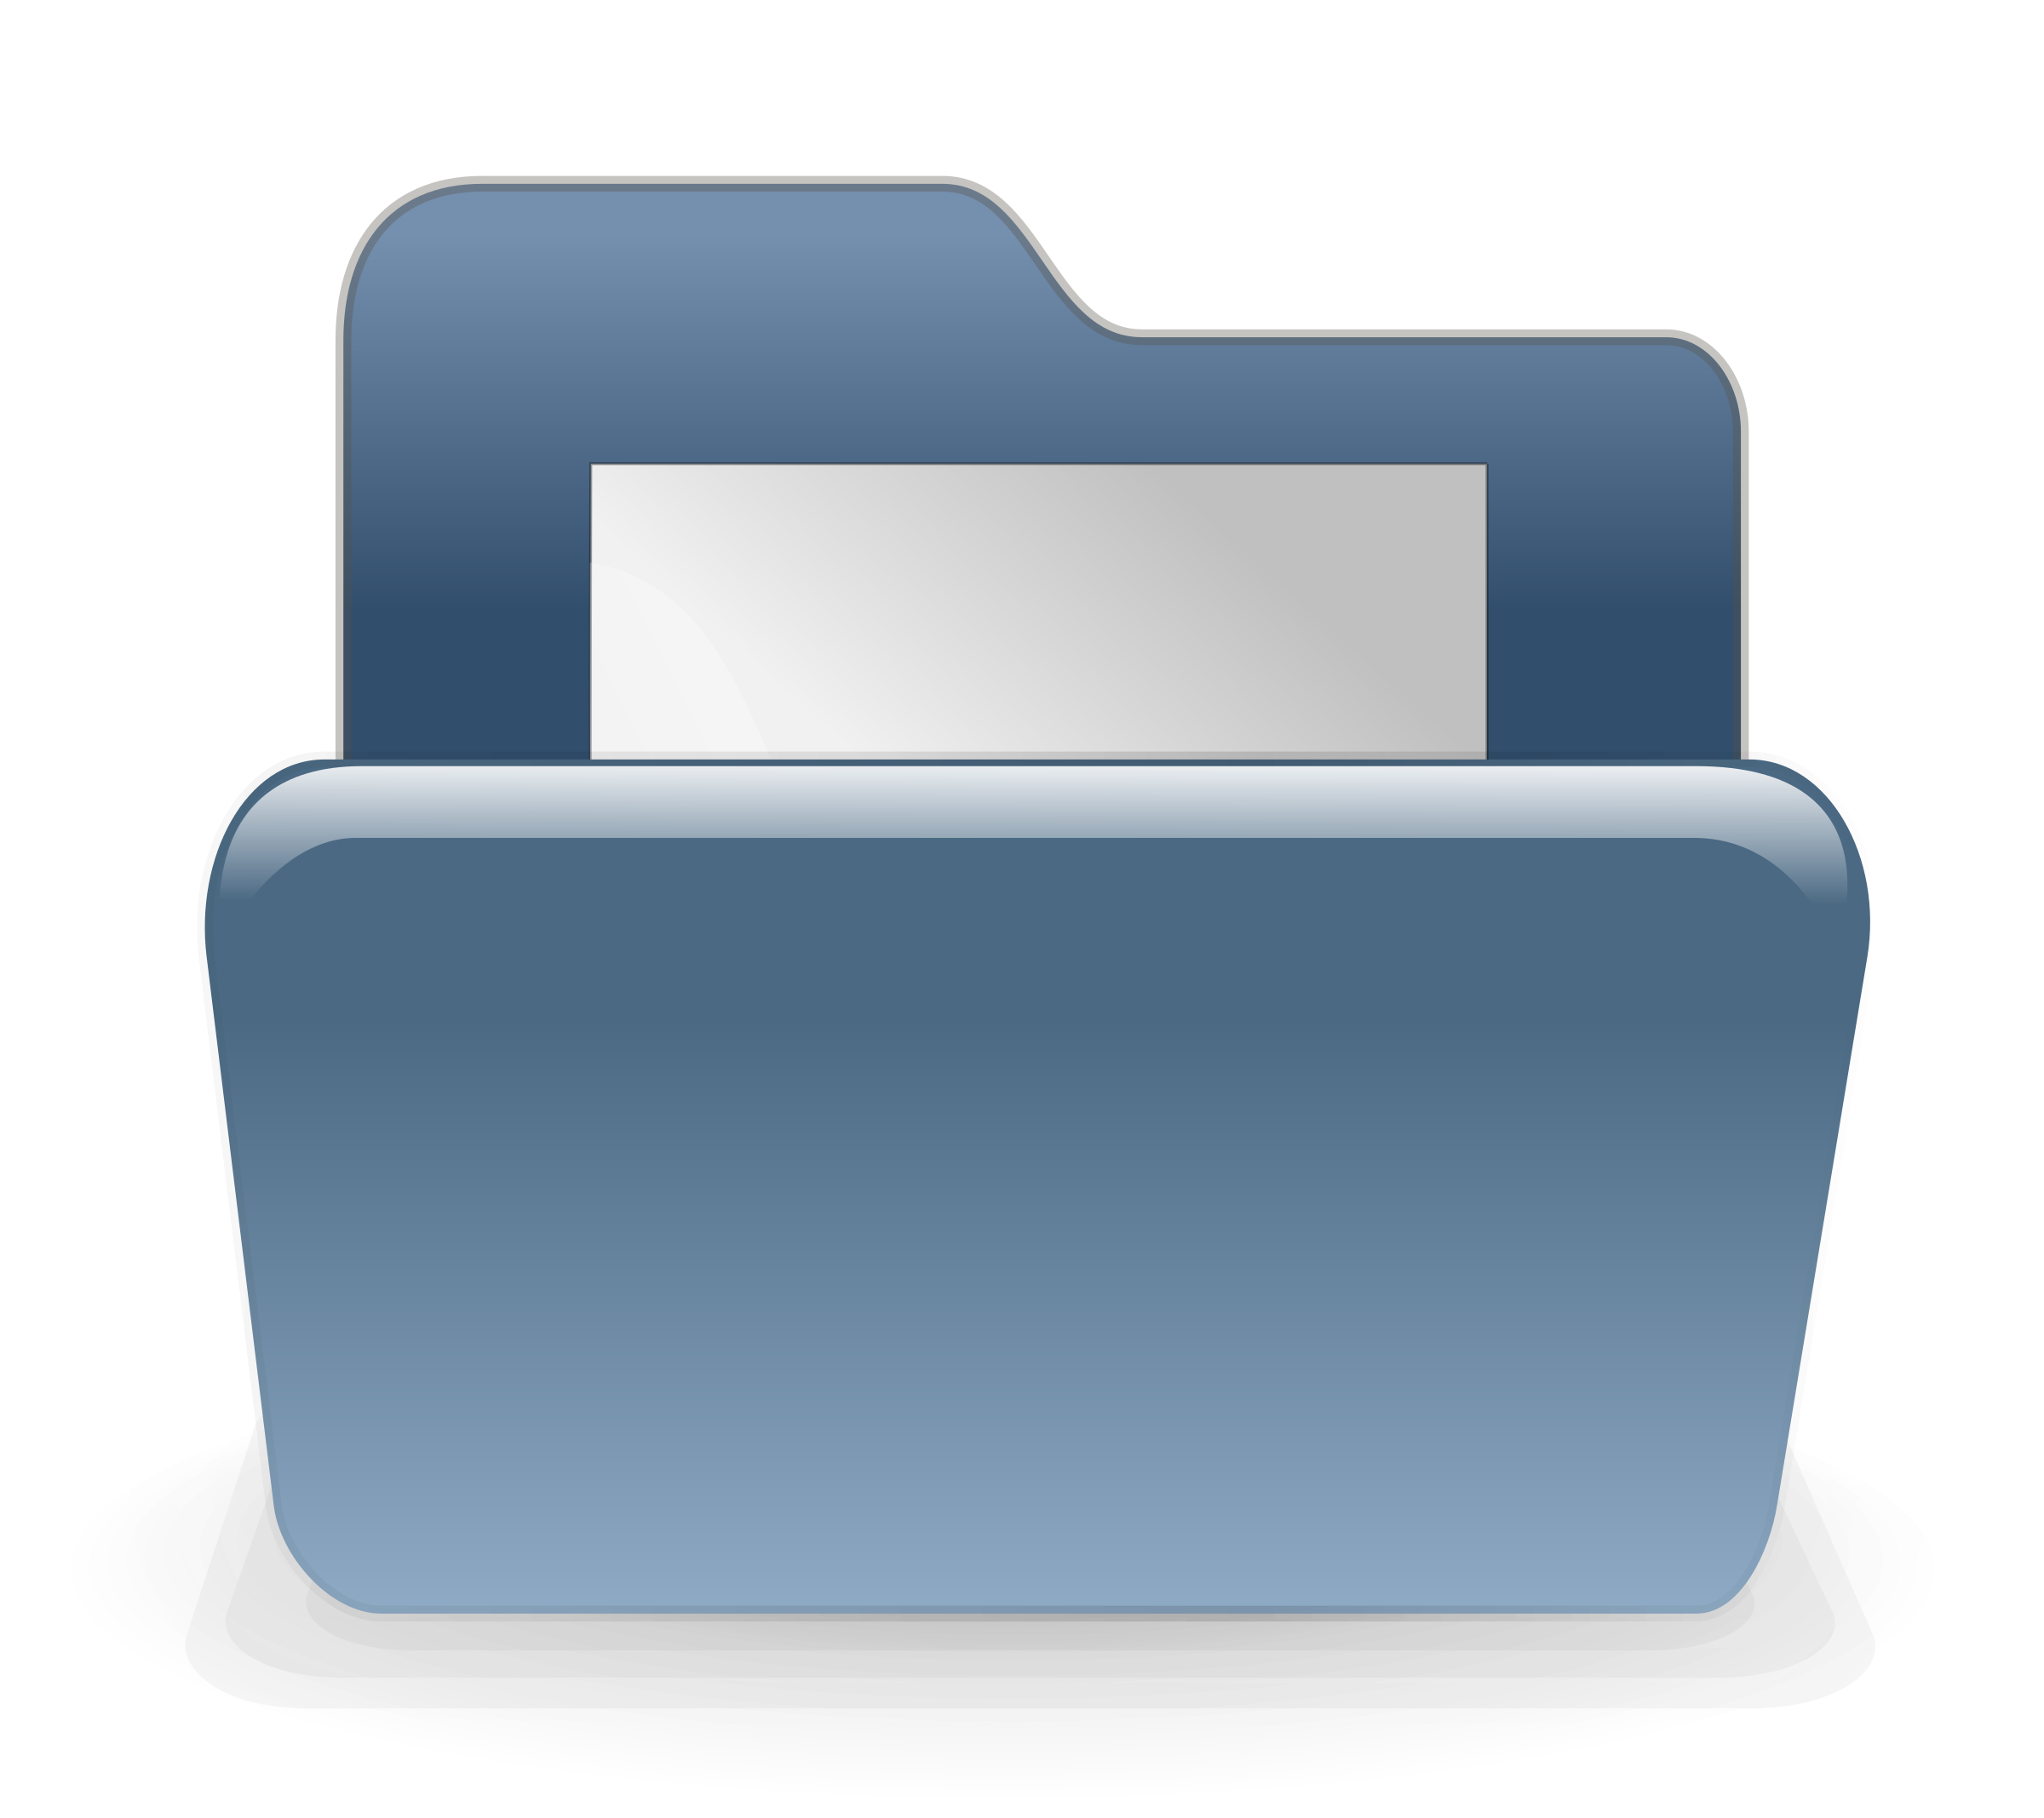 Directory home big image. Folder clipart office material